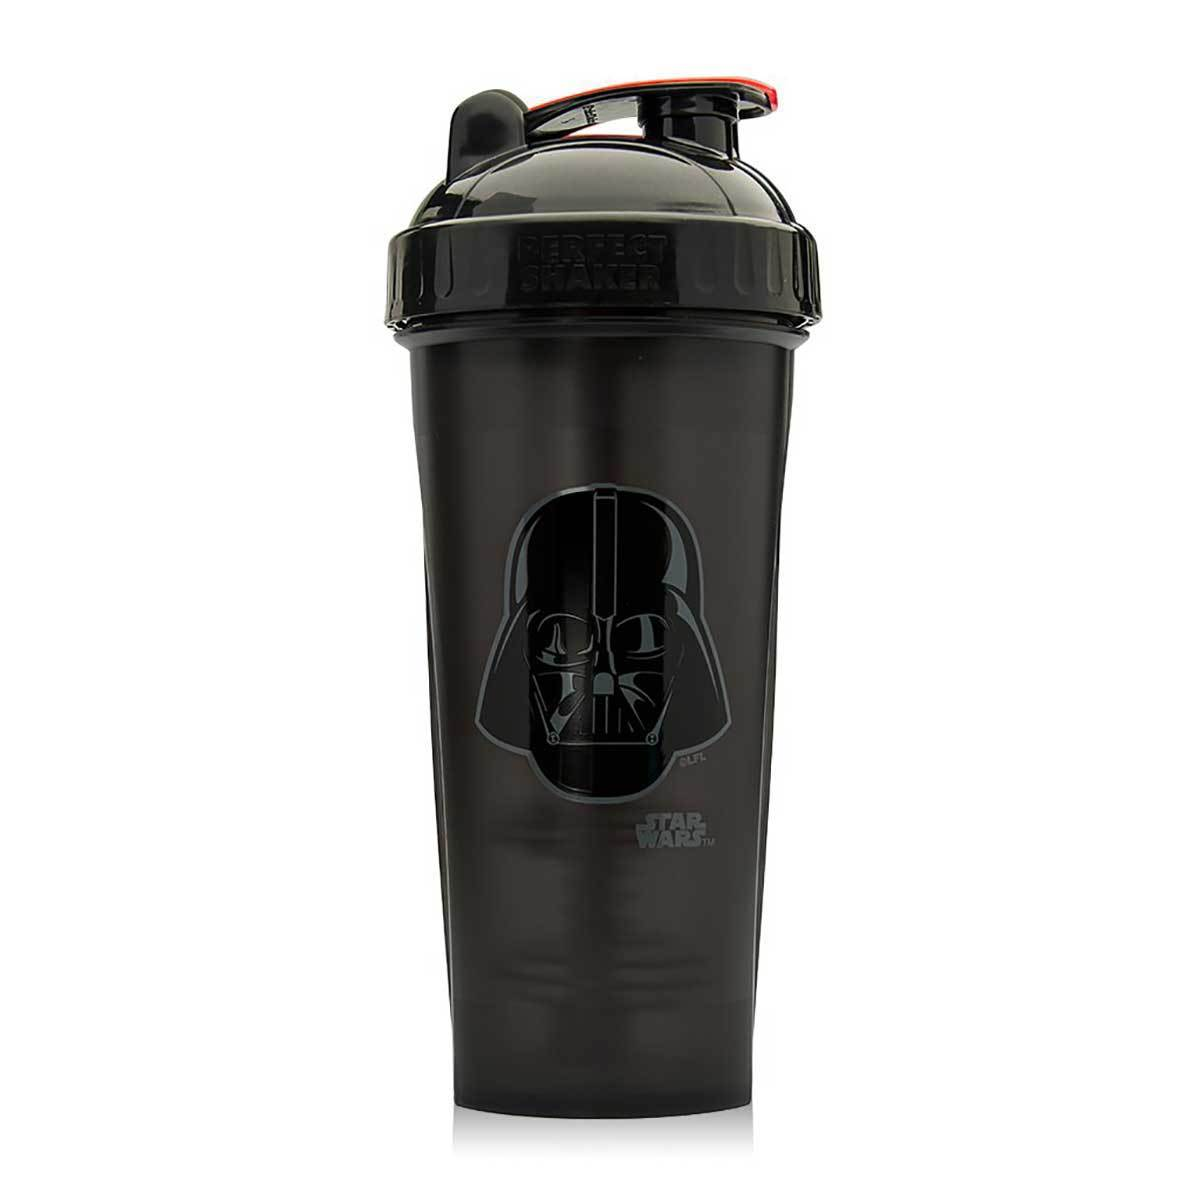 Star Wars Darth Vader Shaker Bottle 28oz Fitness Accessories and Apparel PerfectShaker  (1059312893995)